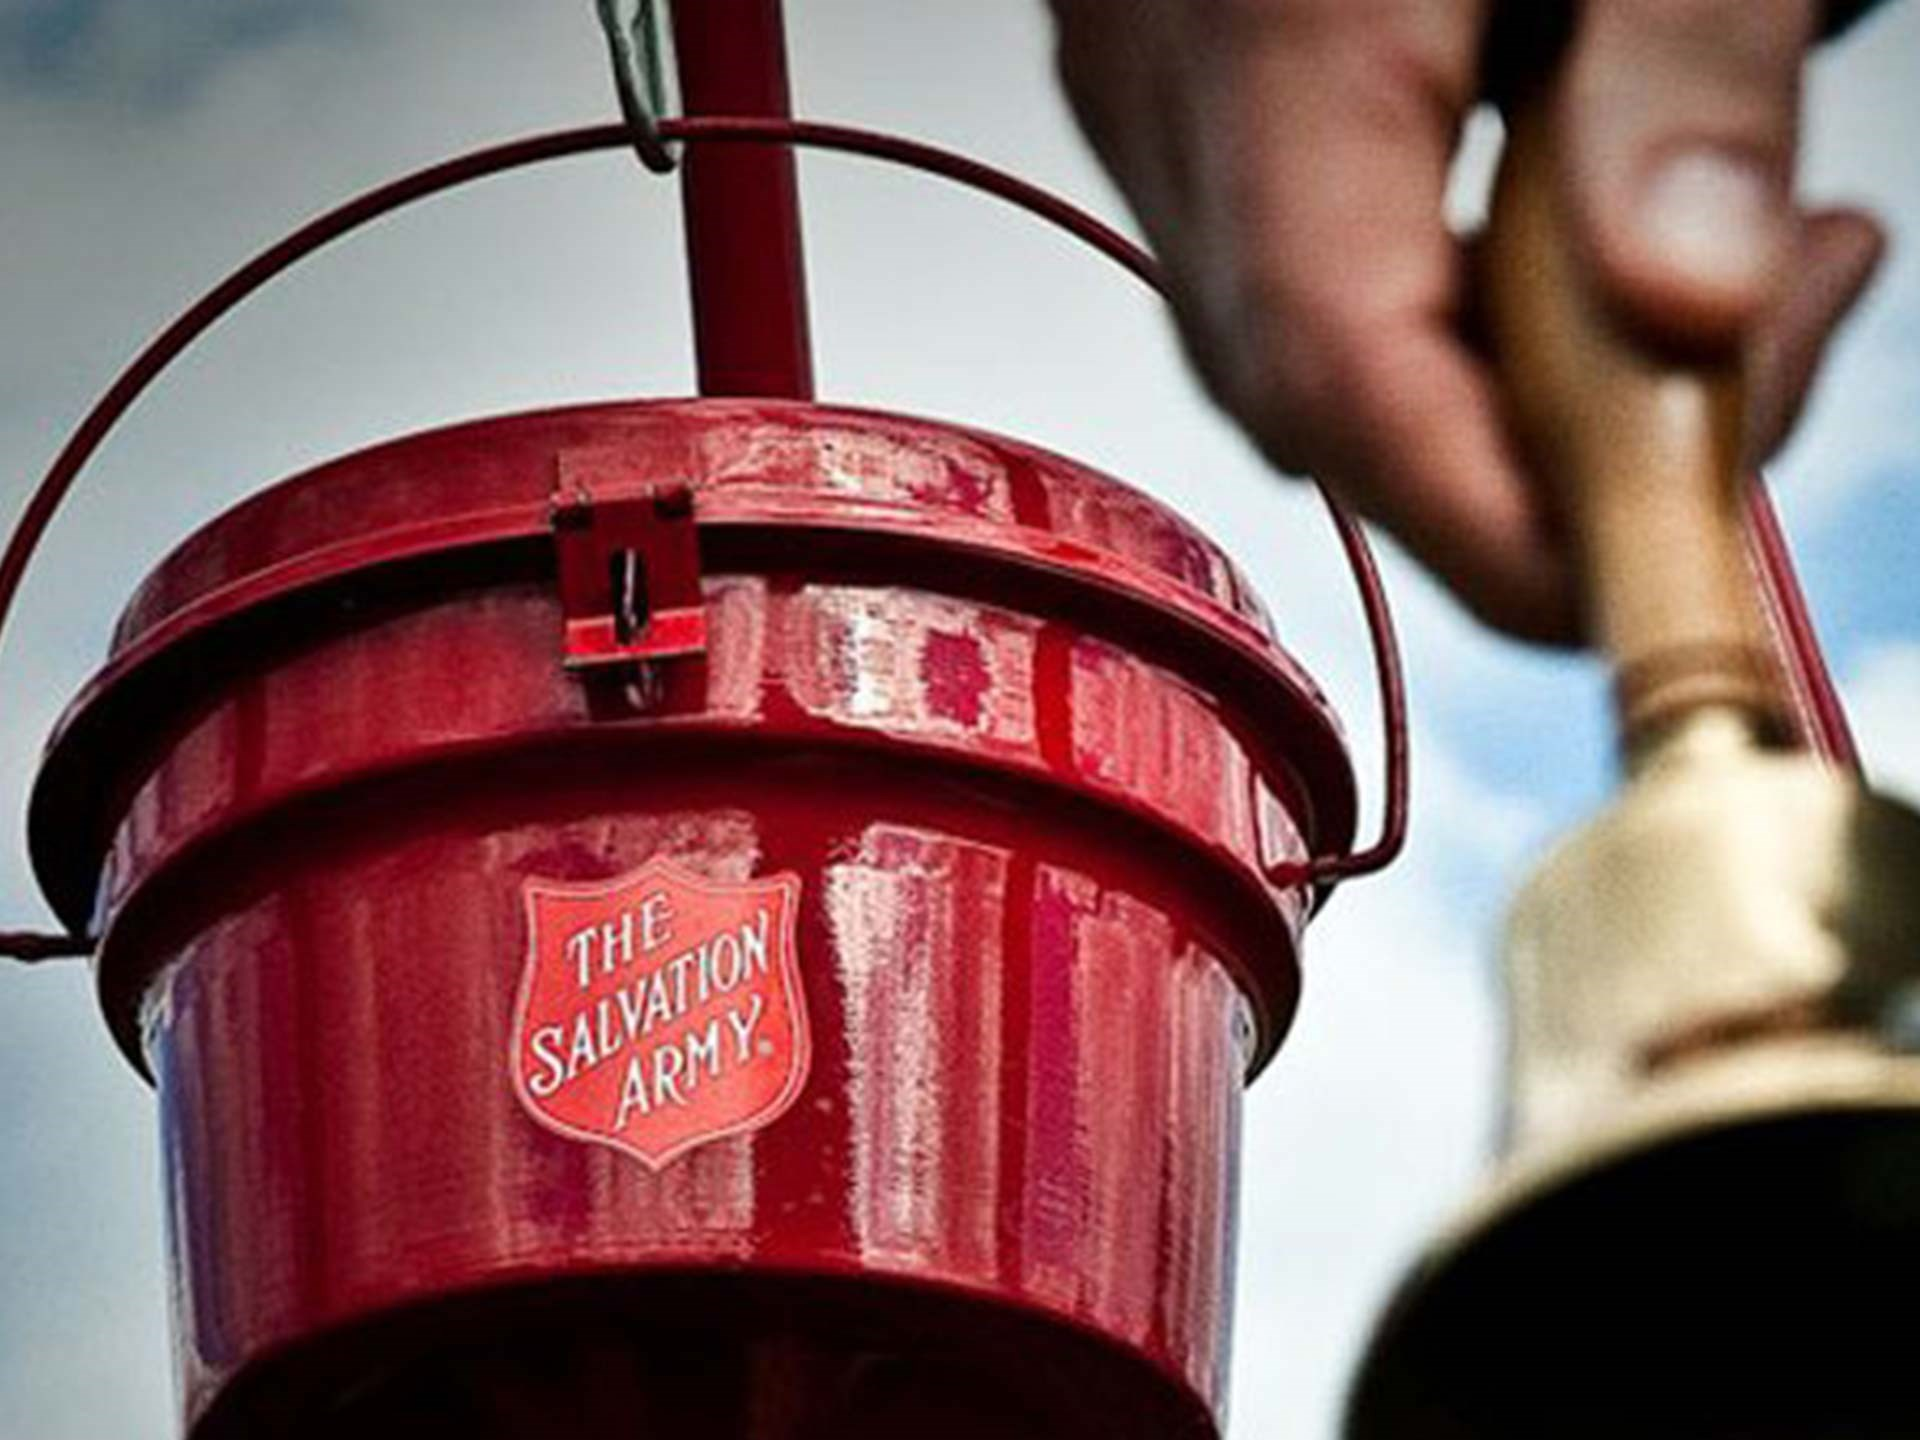 Salvation Army partnership